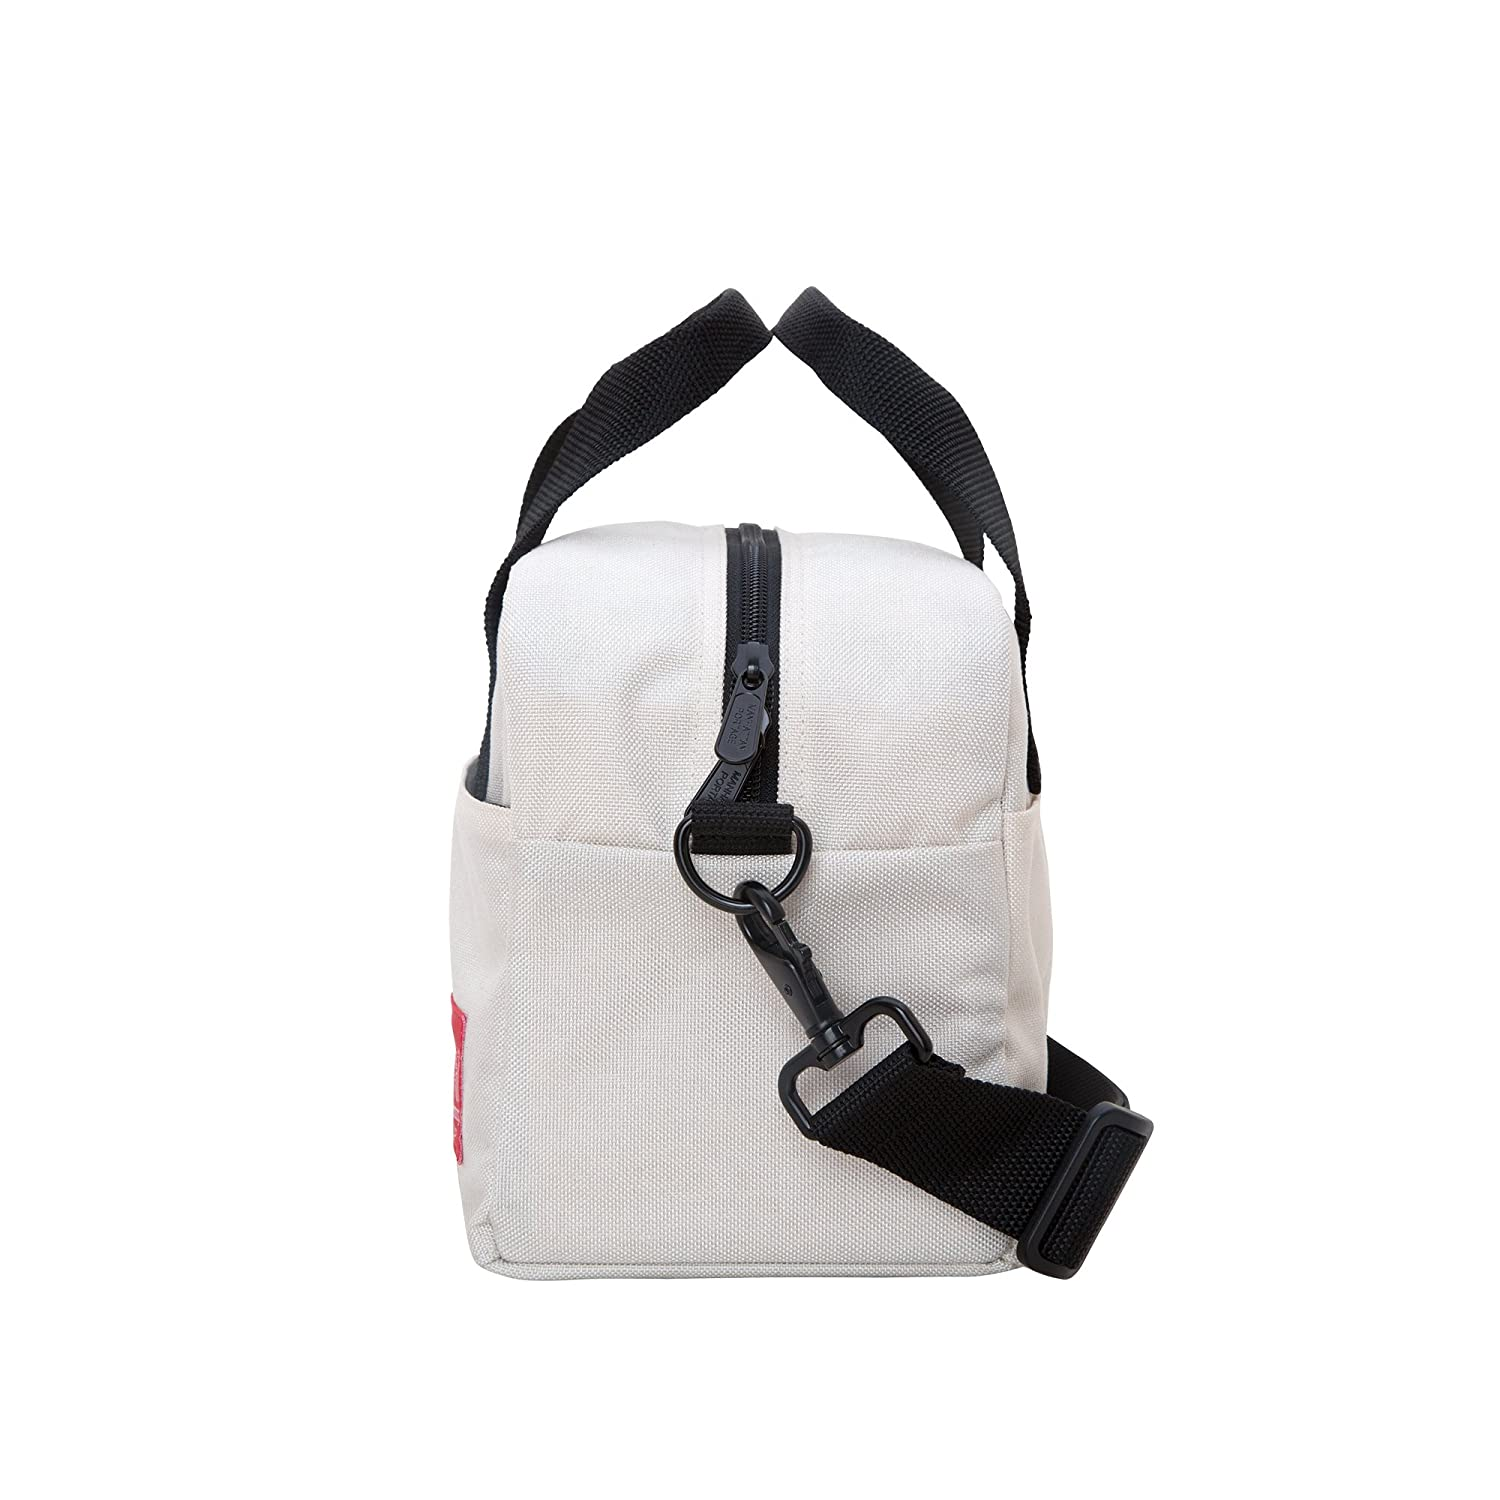 Amazon.com: Manhattan Portage Parkside Bolsa de hombro ...